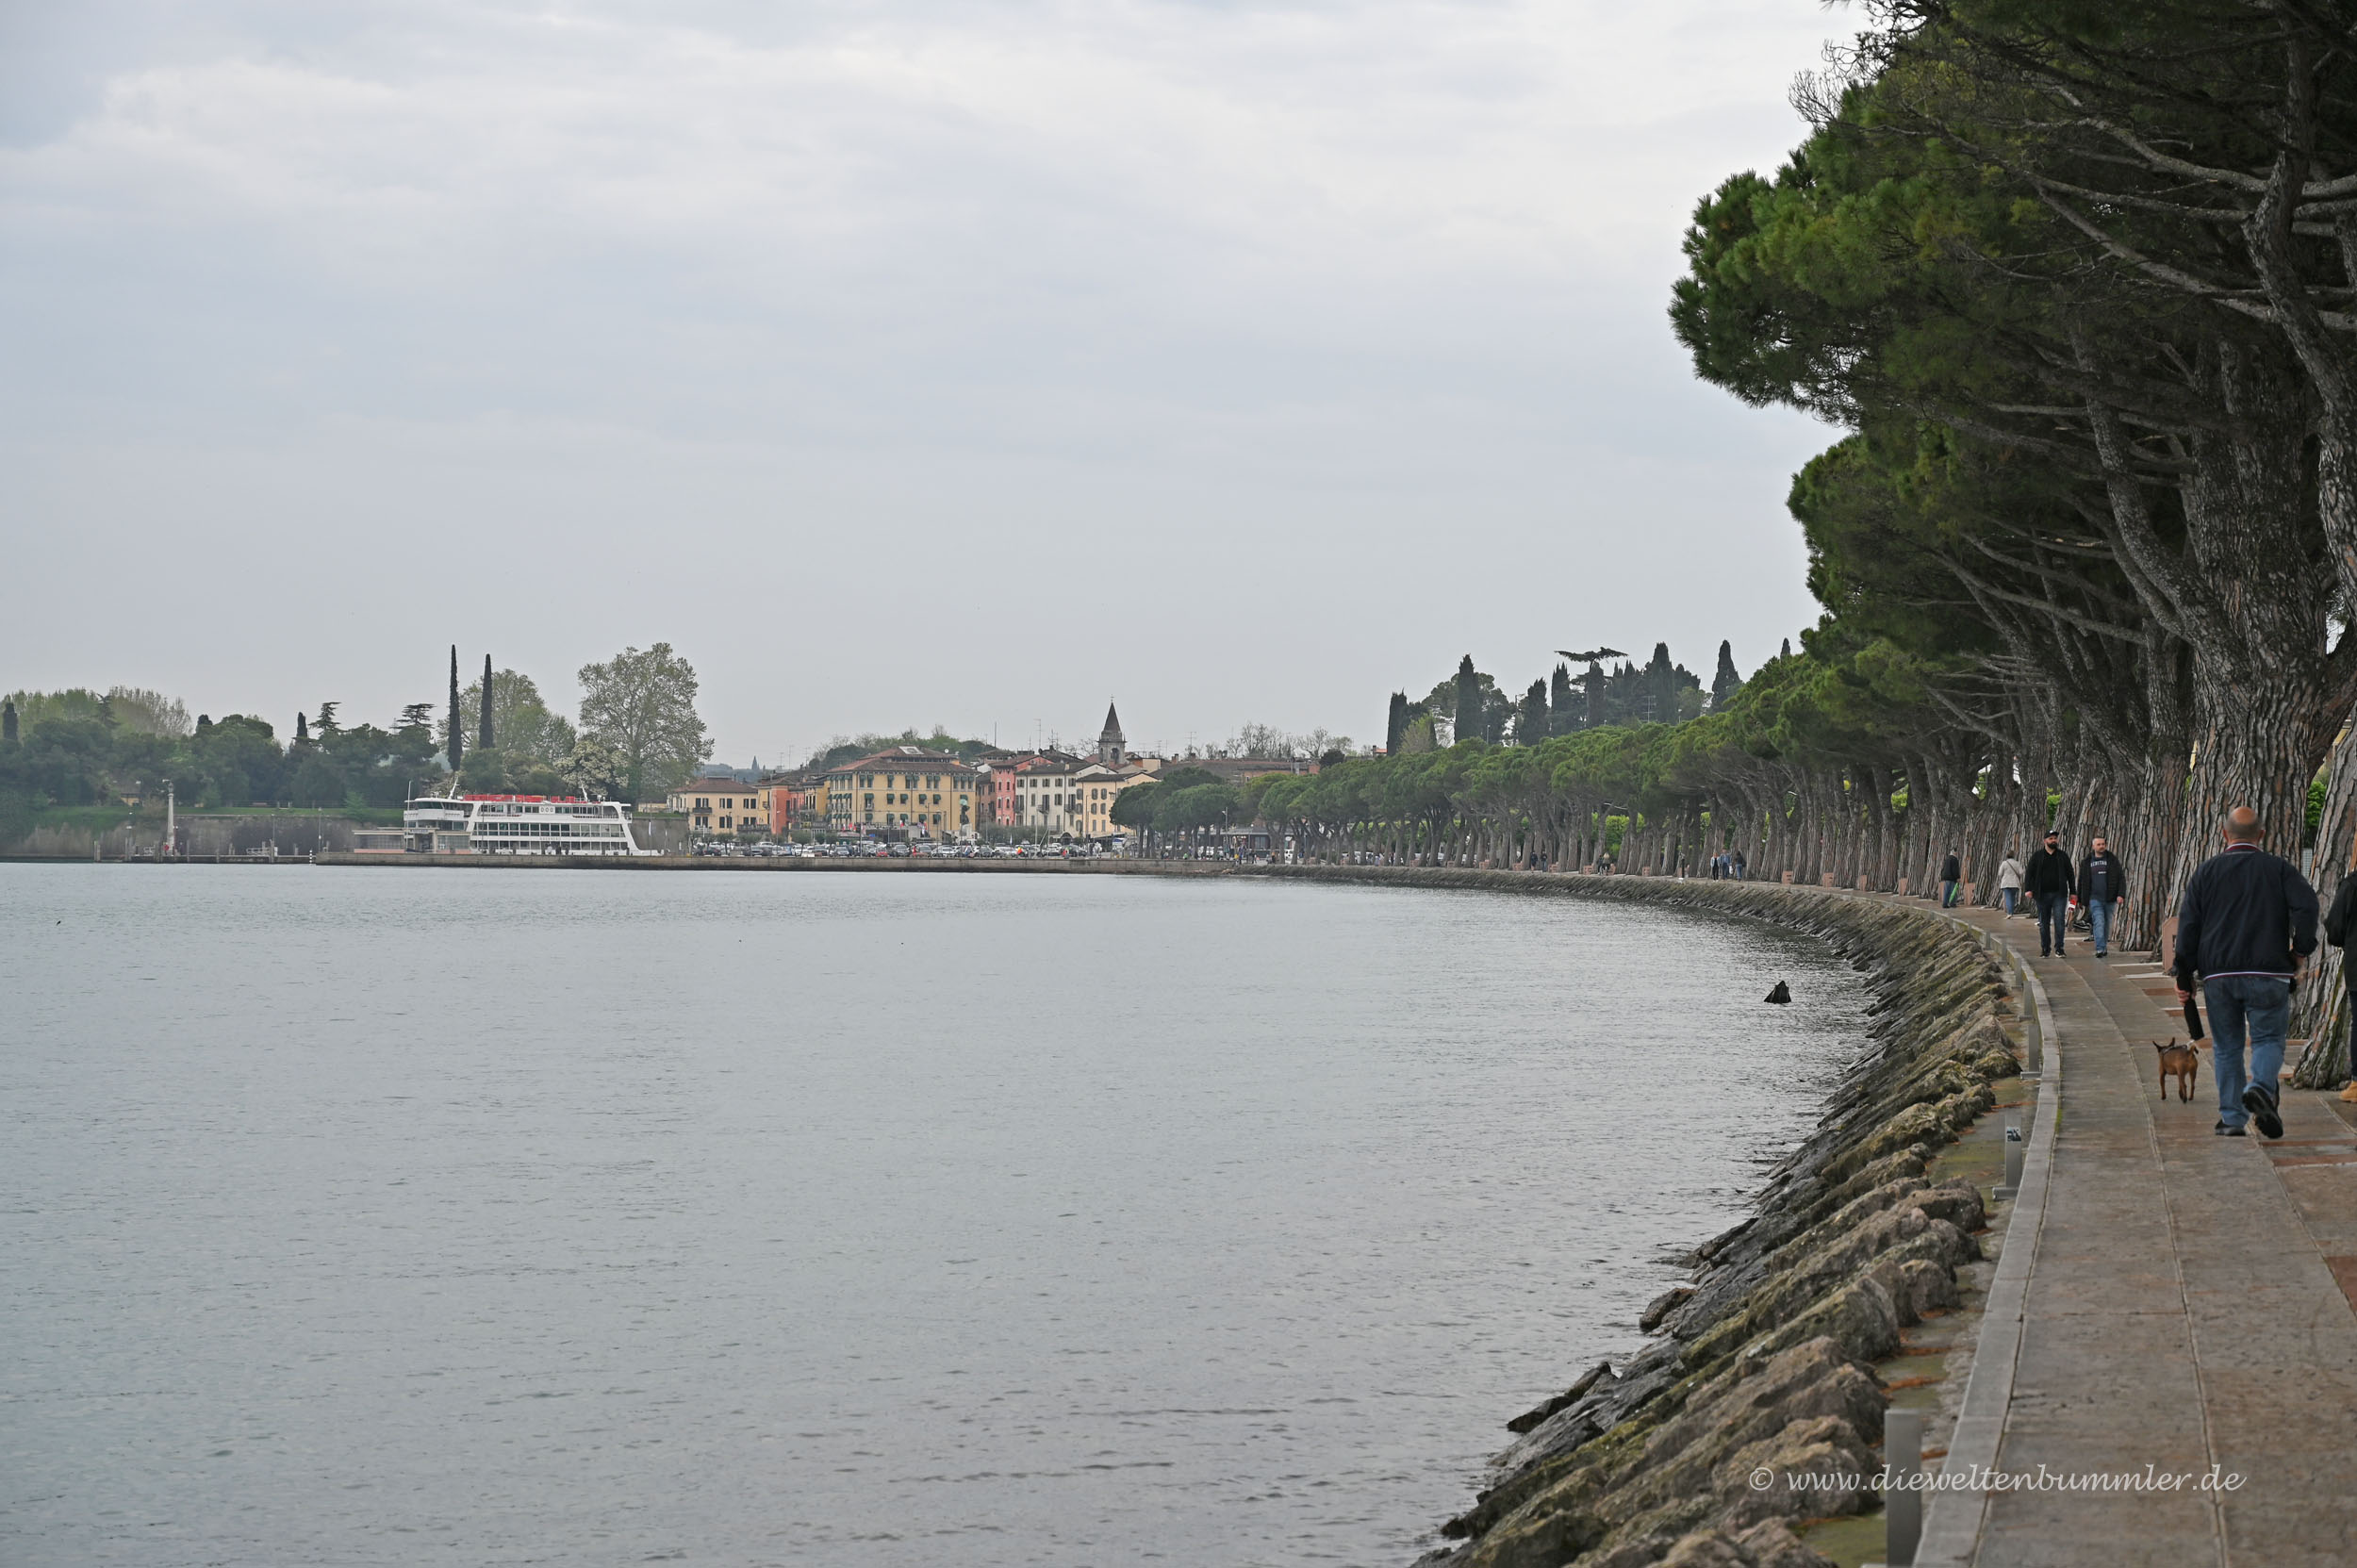 Gardasee in Peschiera